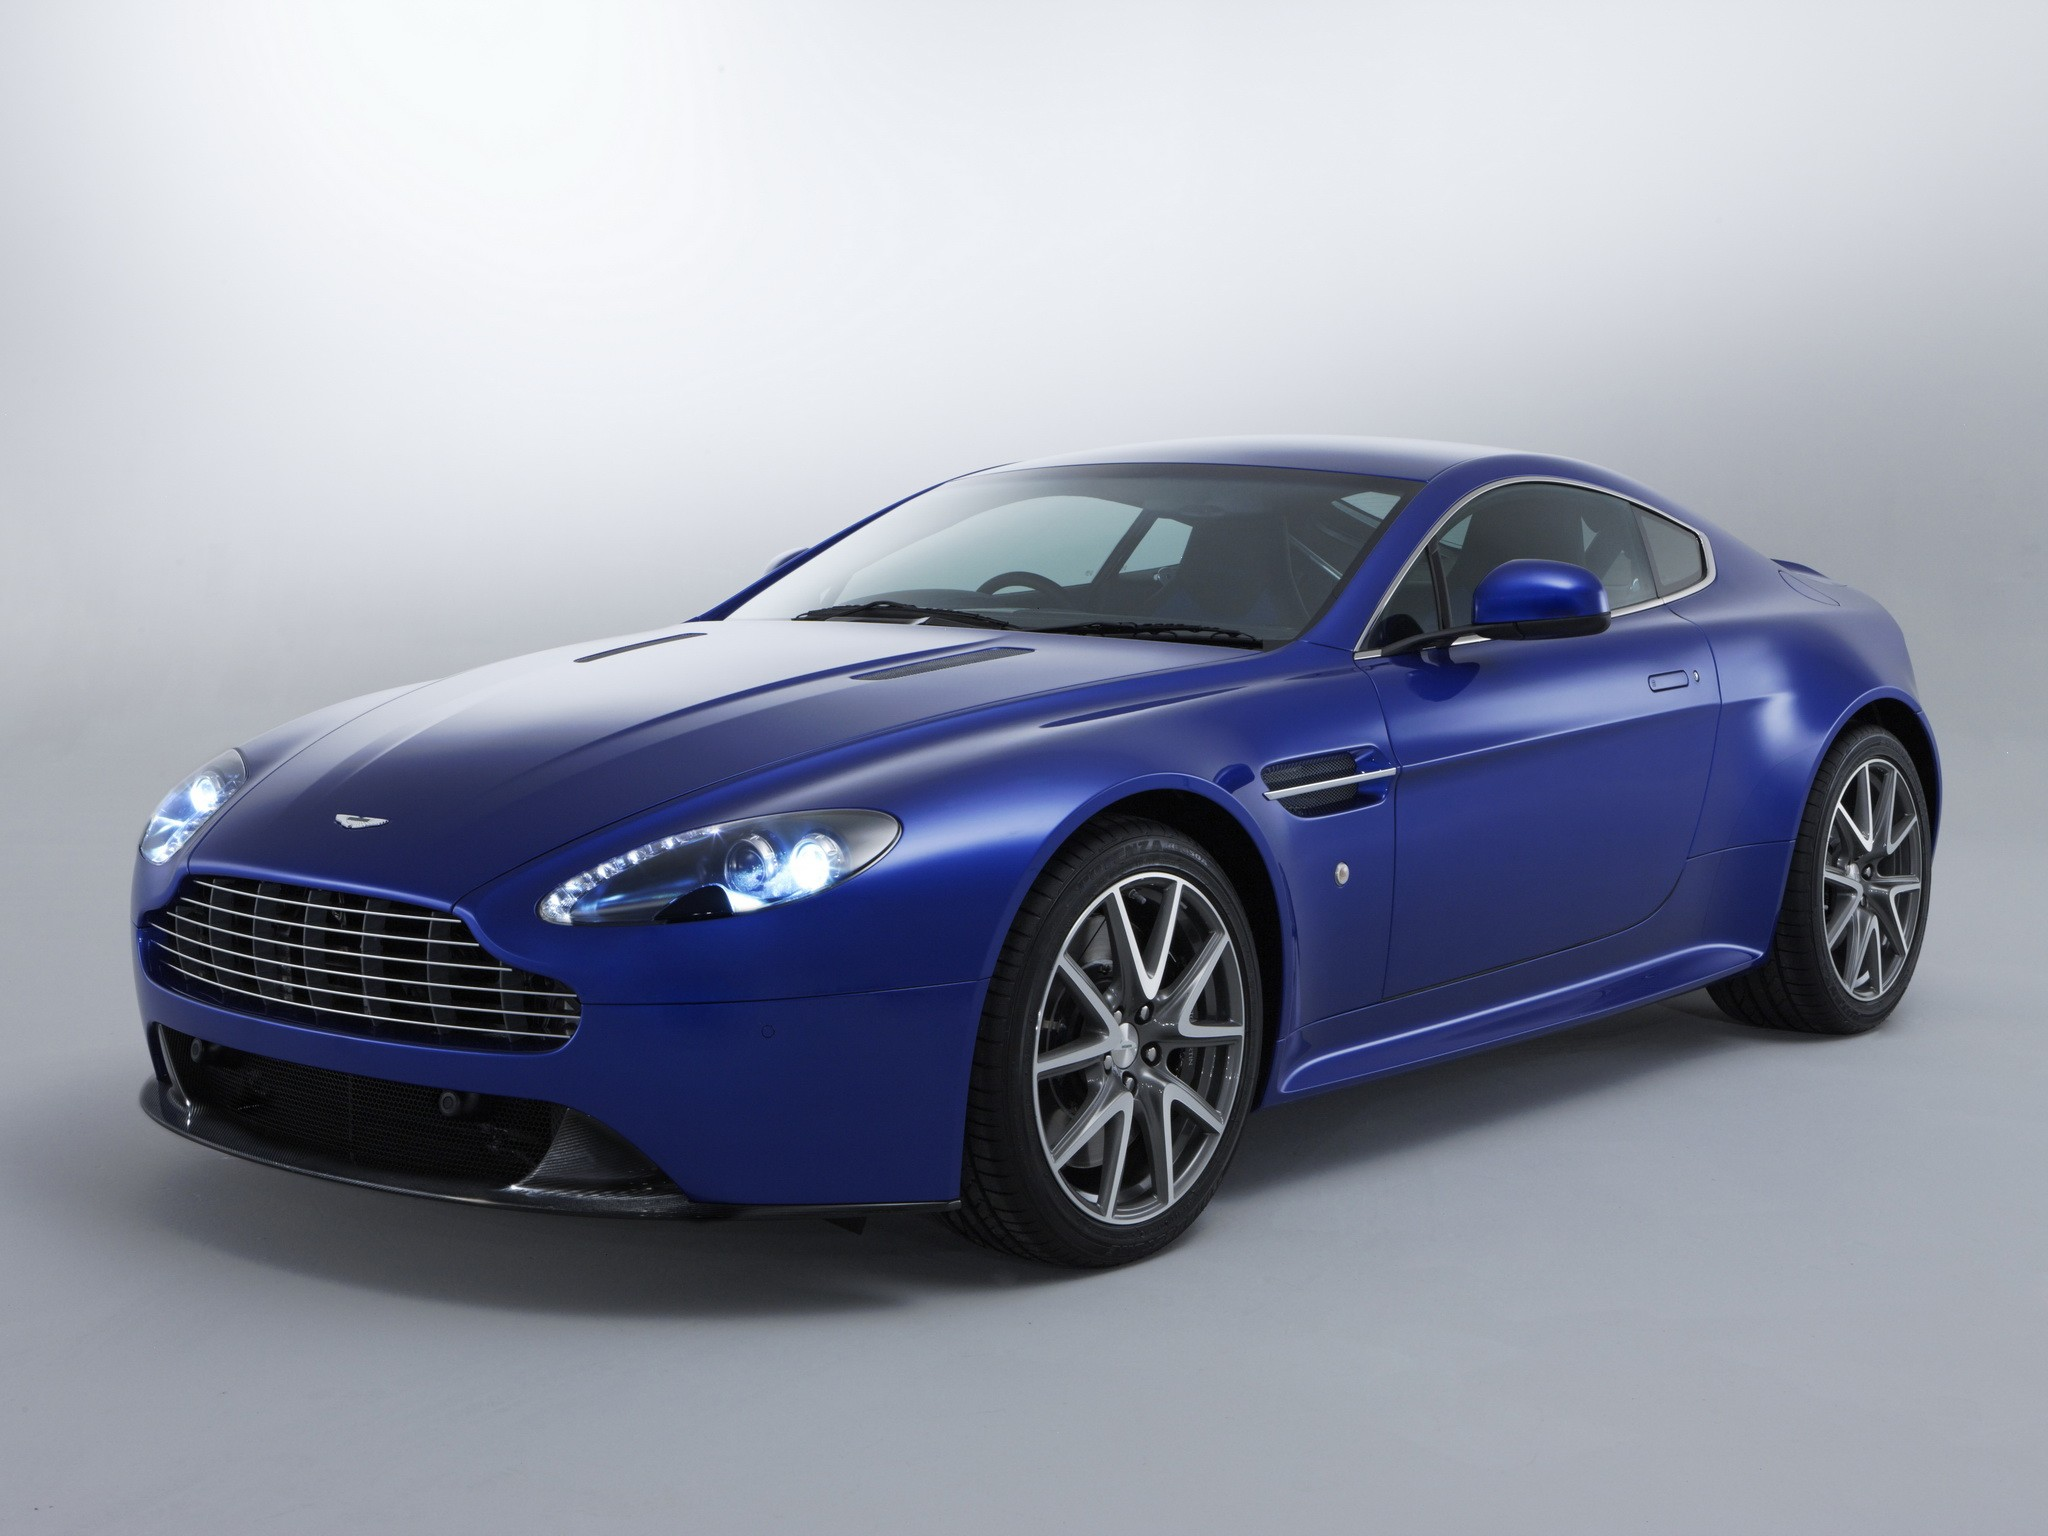 aston martin v8 vantage s 2011 2012 2013 2014 2015 2016 autoevolution. Black Bedroom Furniture Sets. Home Design Ideas